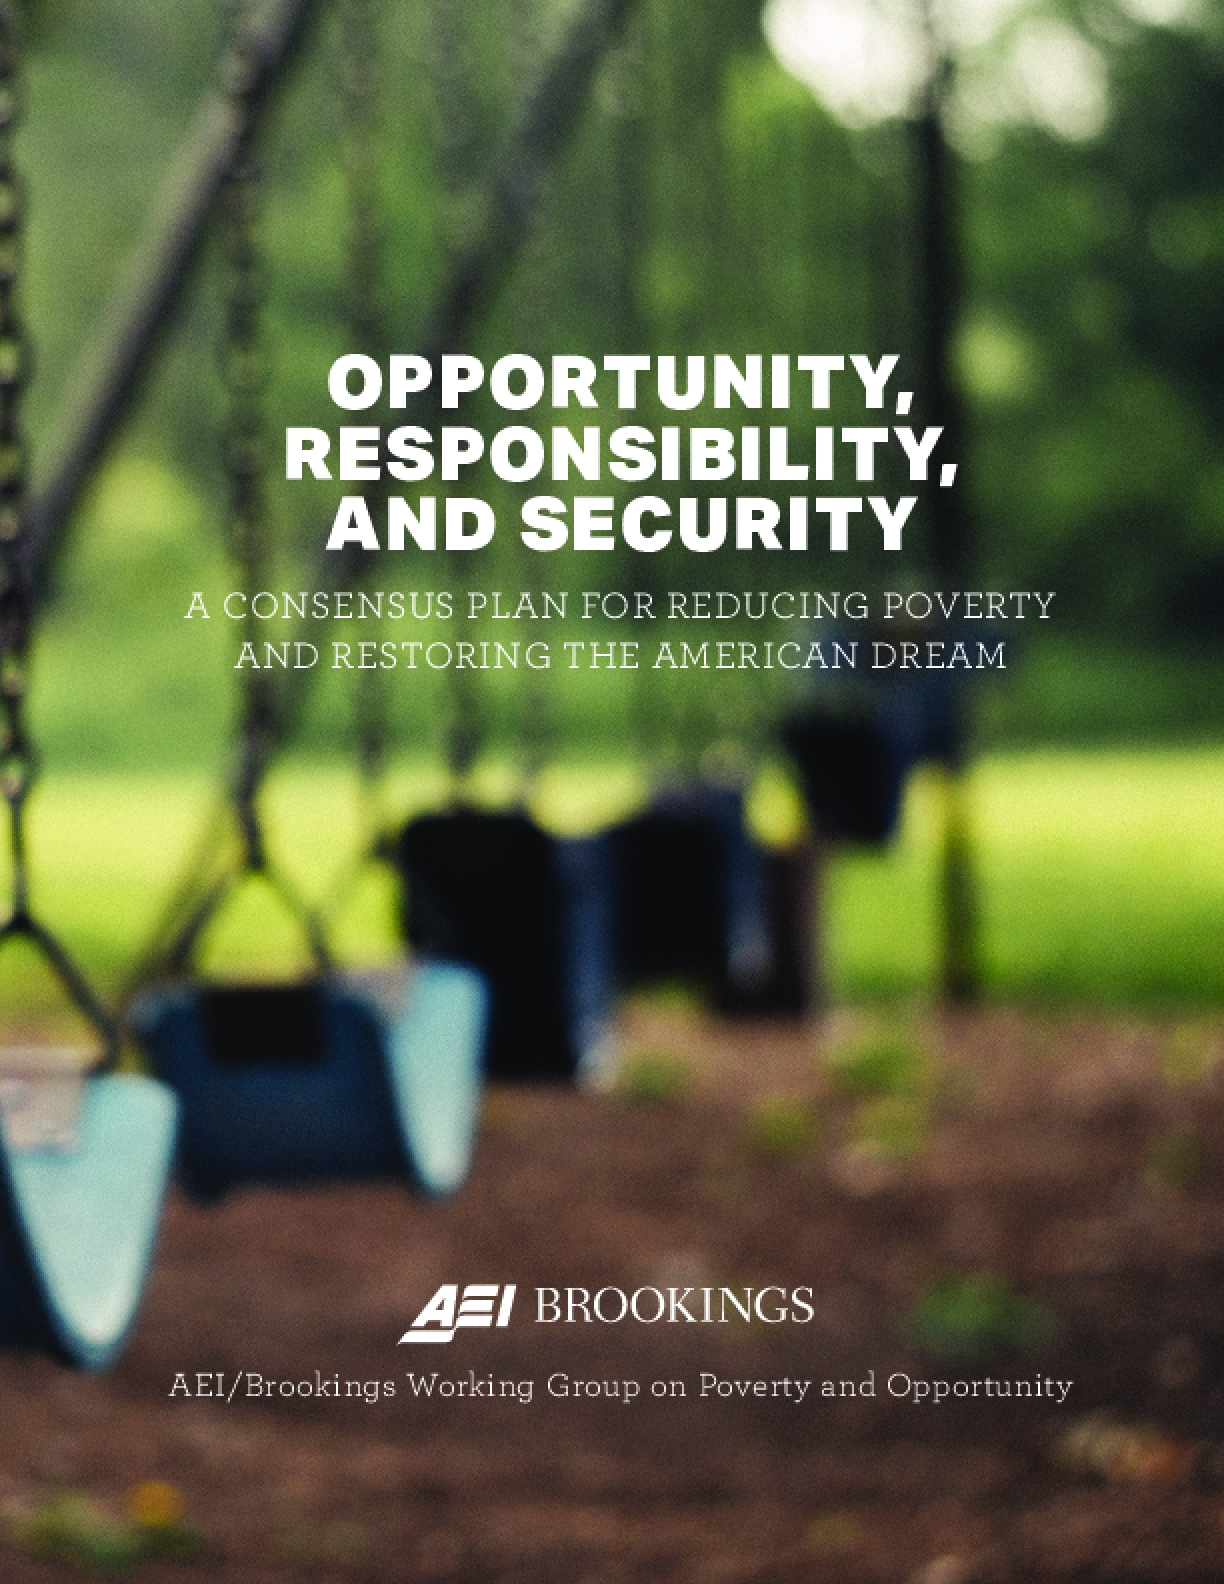 OPPORTUNITY, RESPONSIBILITY, AND SECURITY: A CONSENSUS PLAN FOR REDUCING POVERTY AND RESTORING THE AMERICAN DREAM